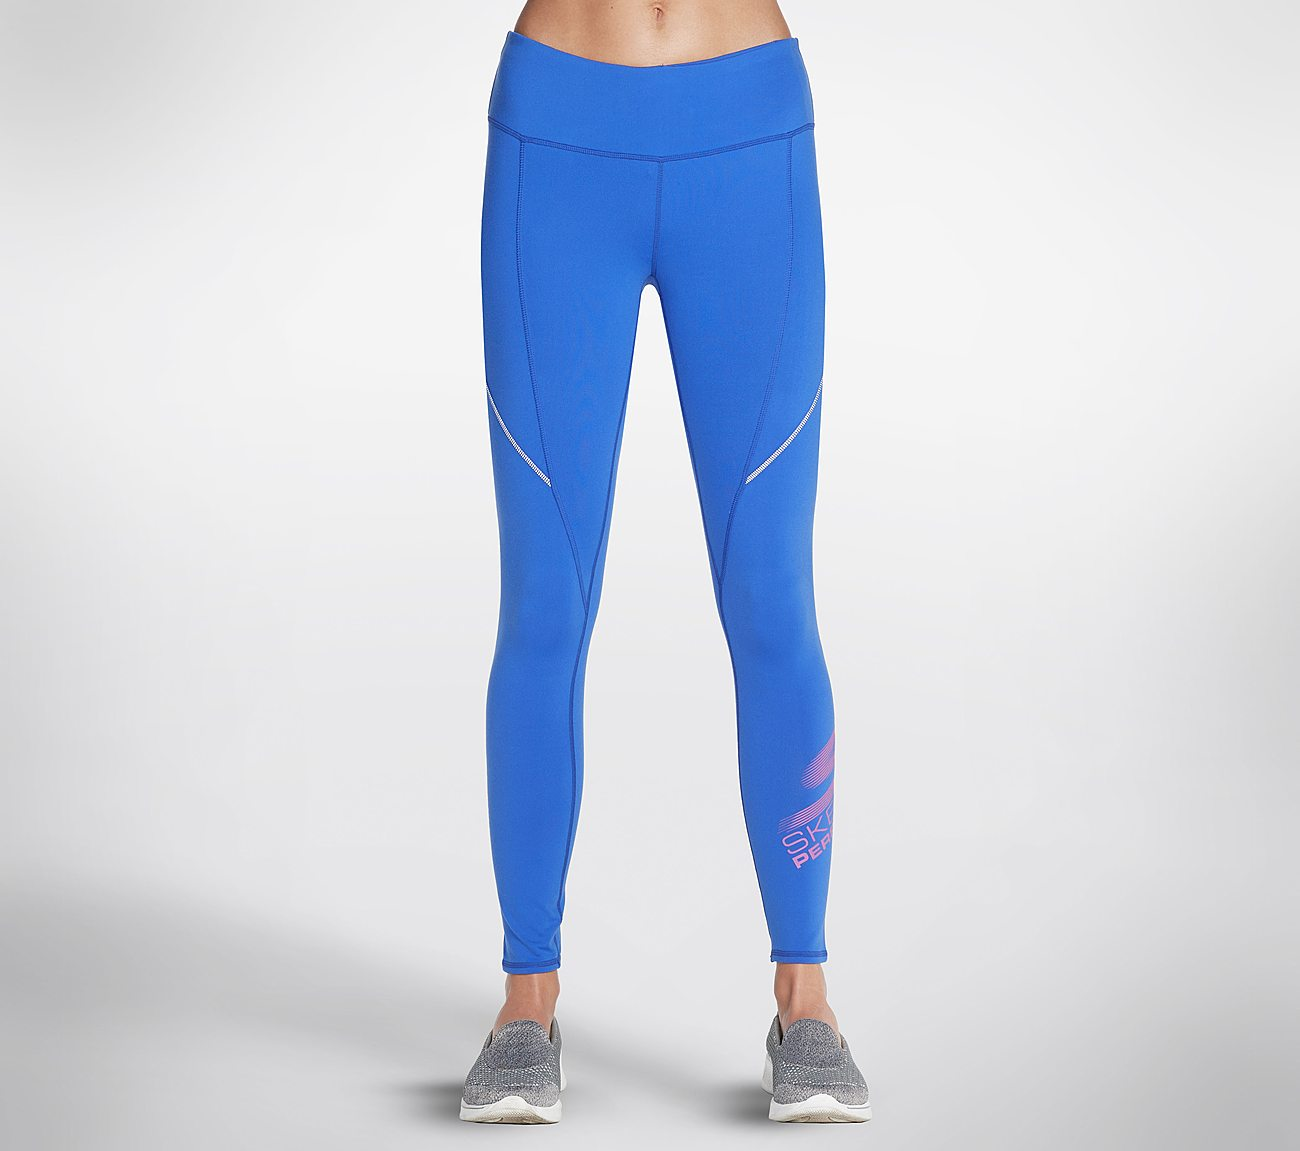 GOFlex Ultra Arabesque Legging